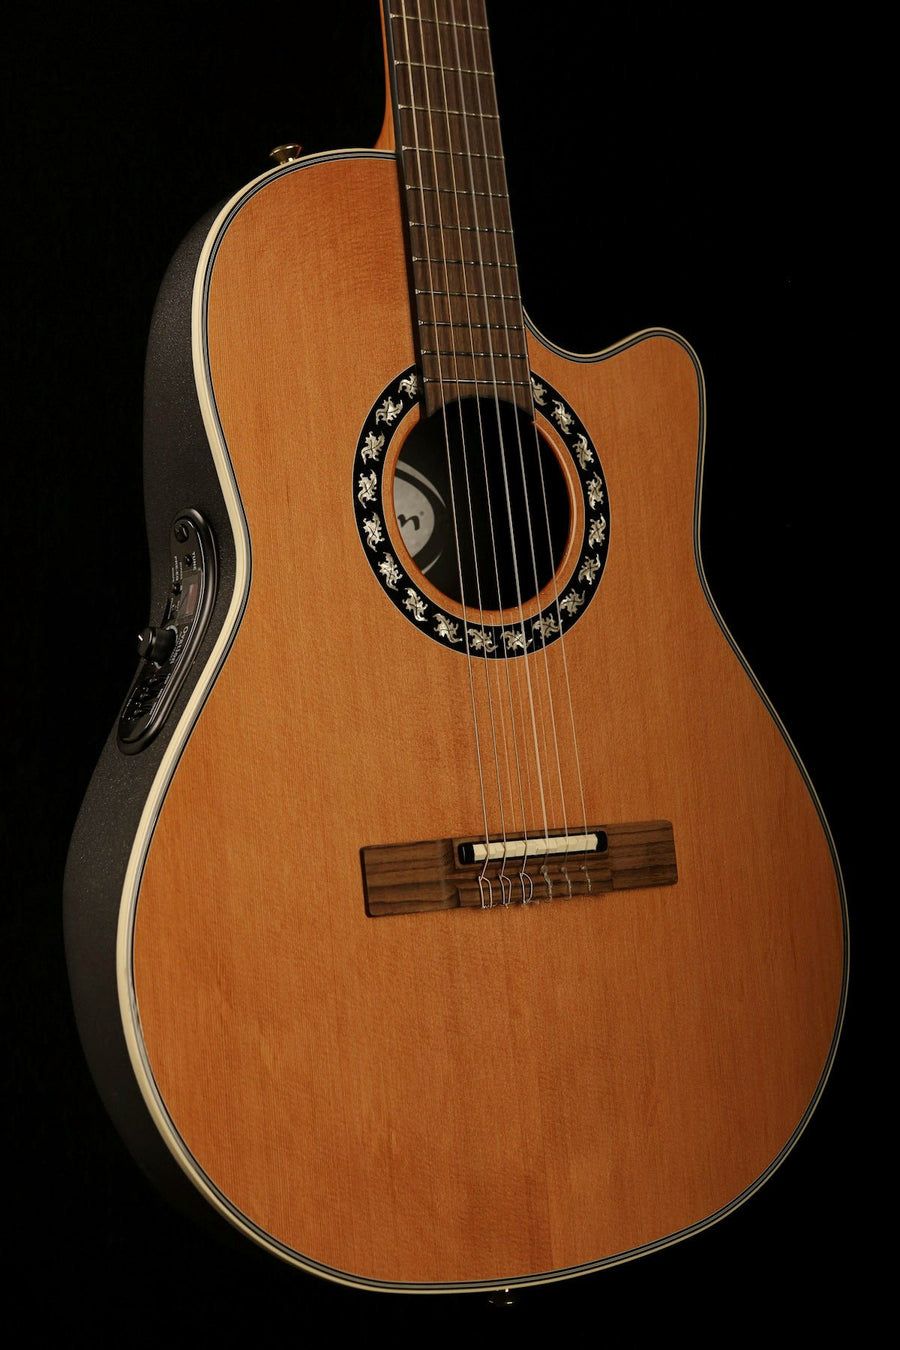 Ovation Classic Nylon M 1773 AX4 natural Top